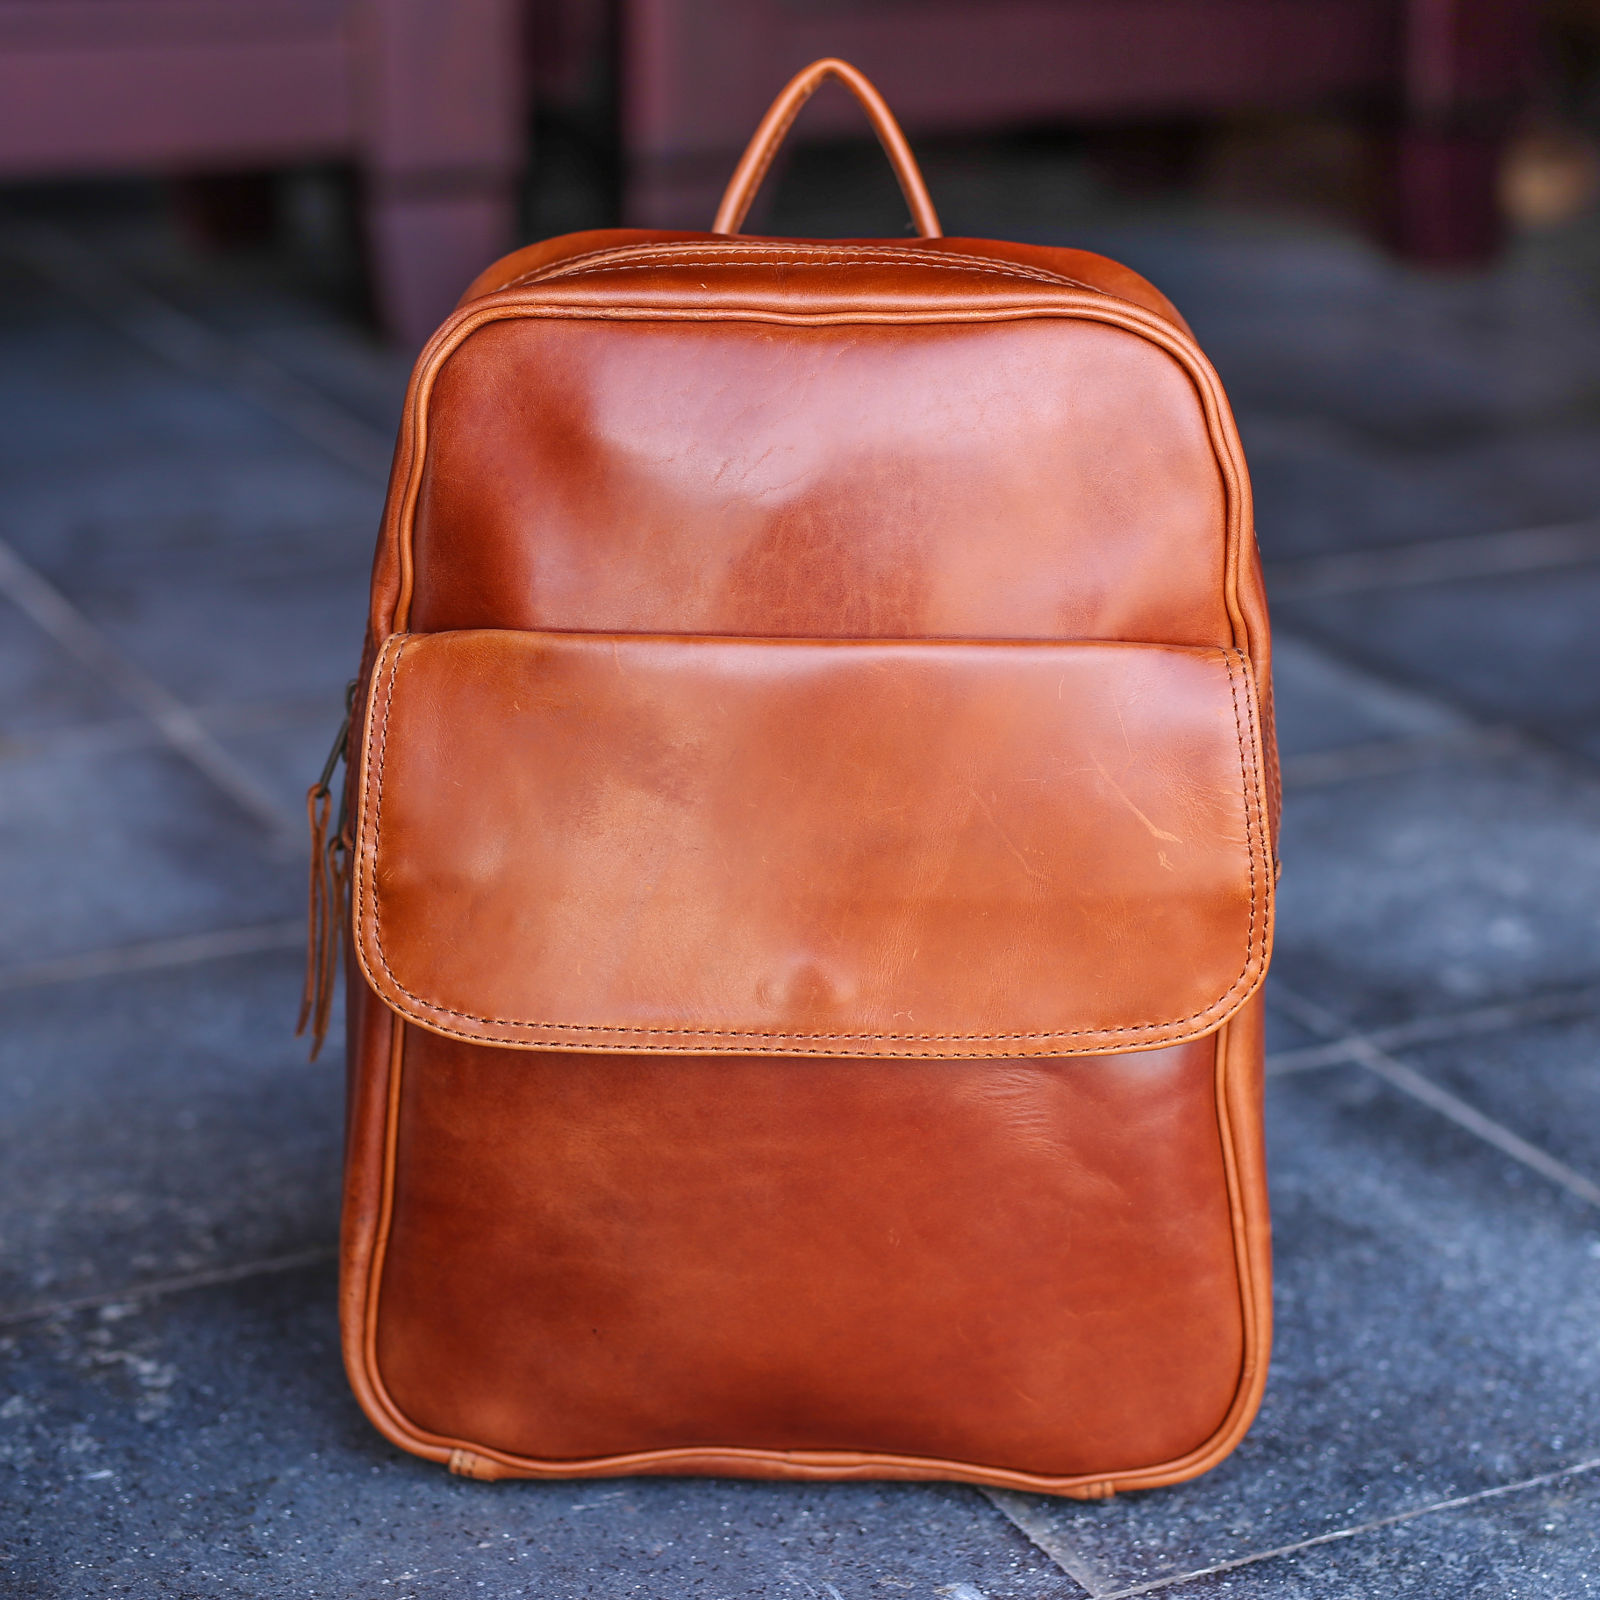 Da Bao Real Leather Hoi An - Leather Bags: Brown Leather Backpack